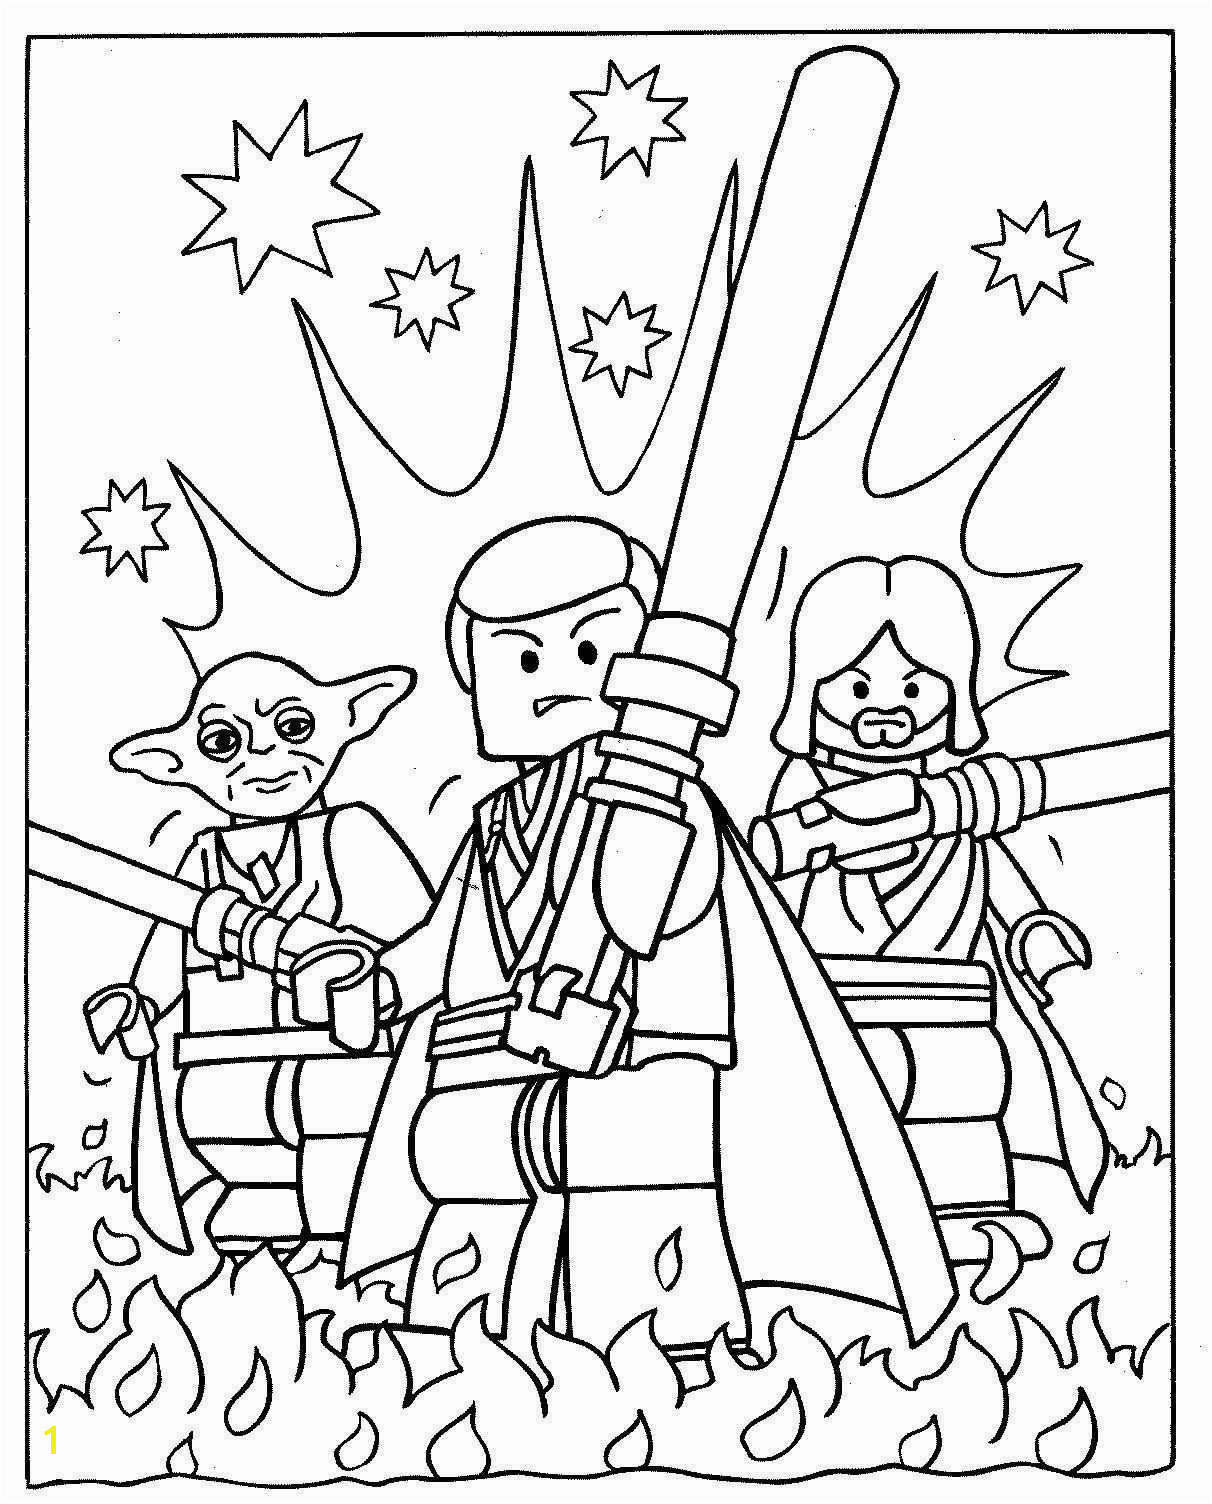 Darth Maul Coloring Page Fresh Lego Darth Maul Coloring Pages Fresh Lego Star Wars Coloring Pages